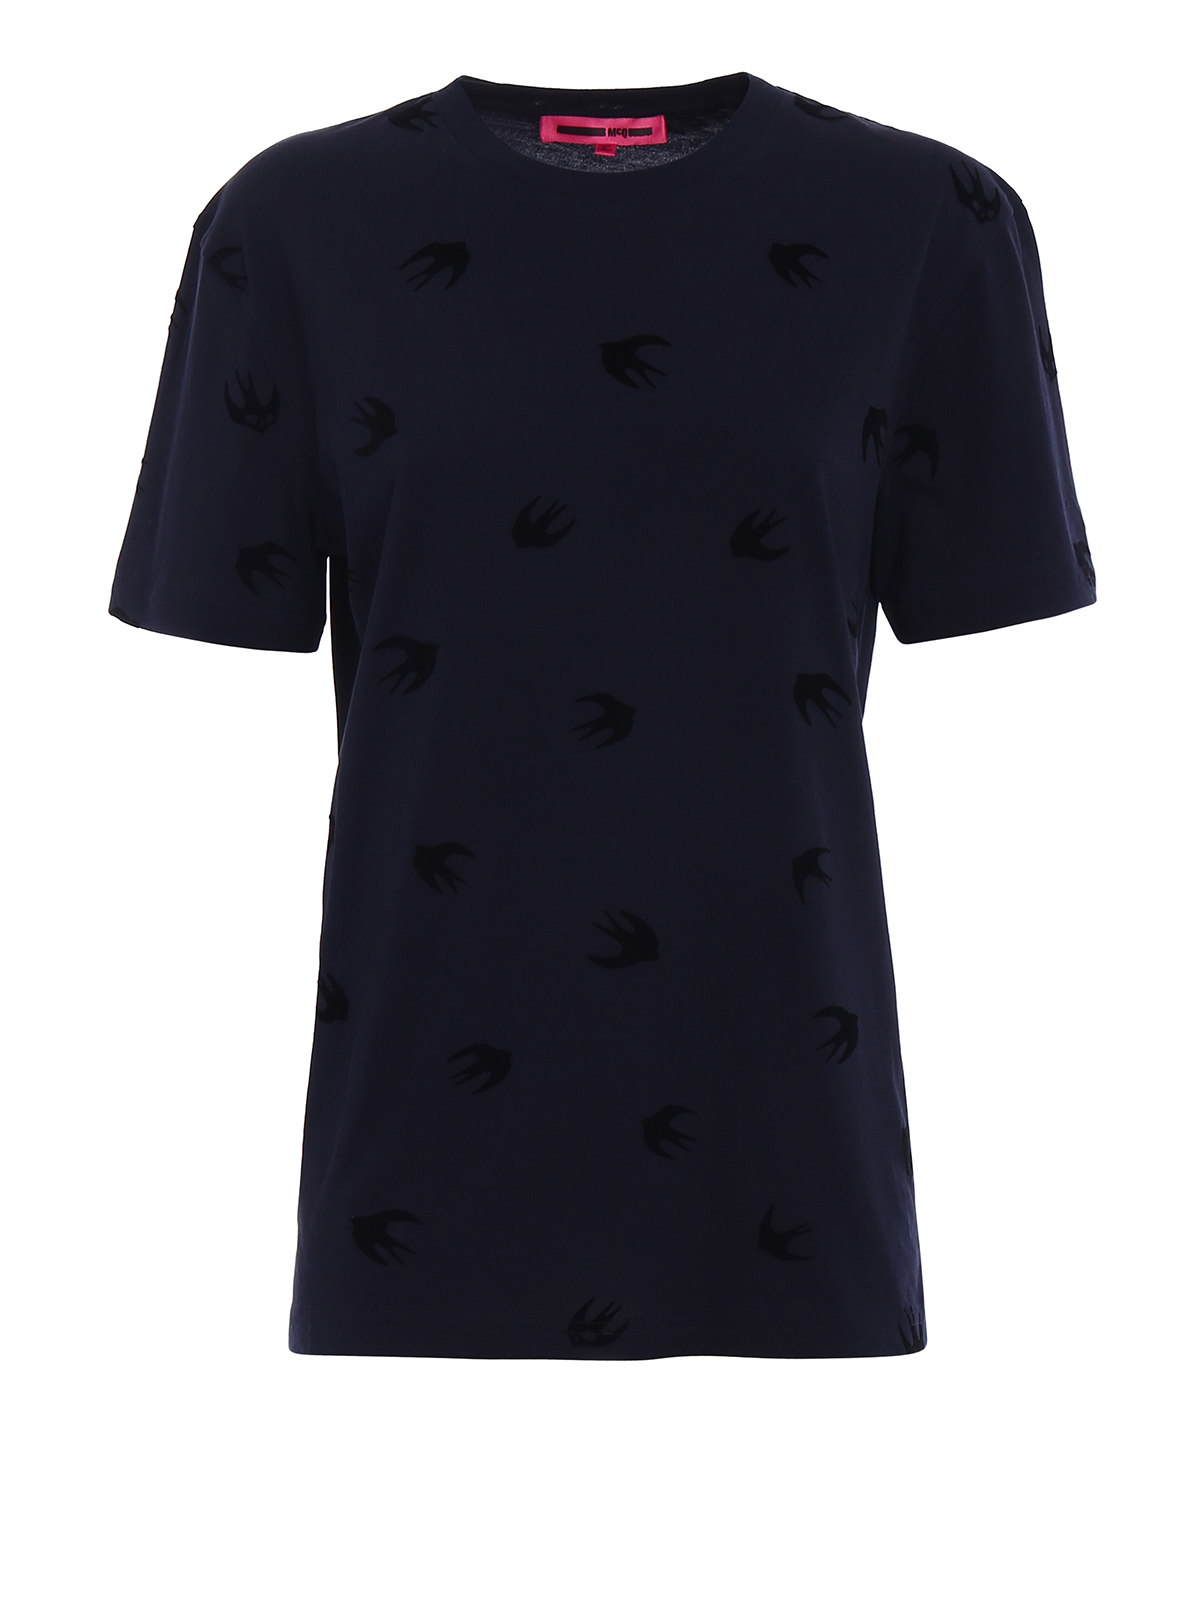 Swallow print ink cotton T-shirt by Mcq - t-shirts | iKRIX - photo#37